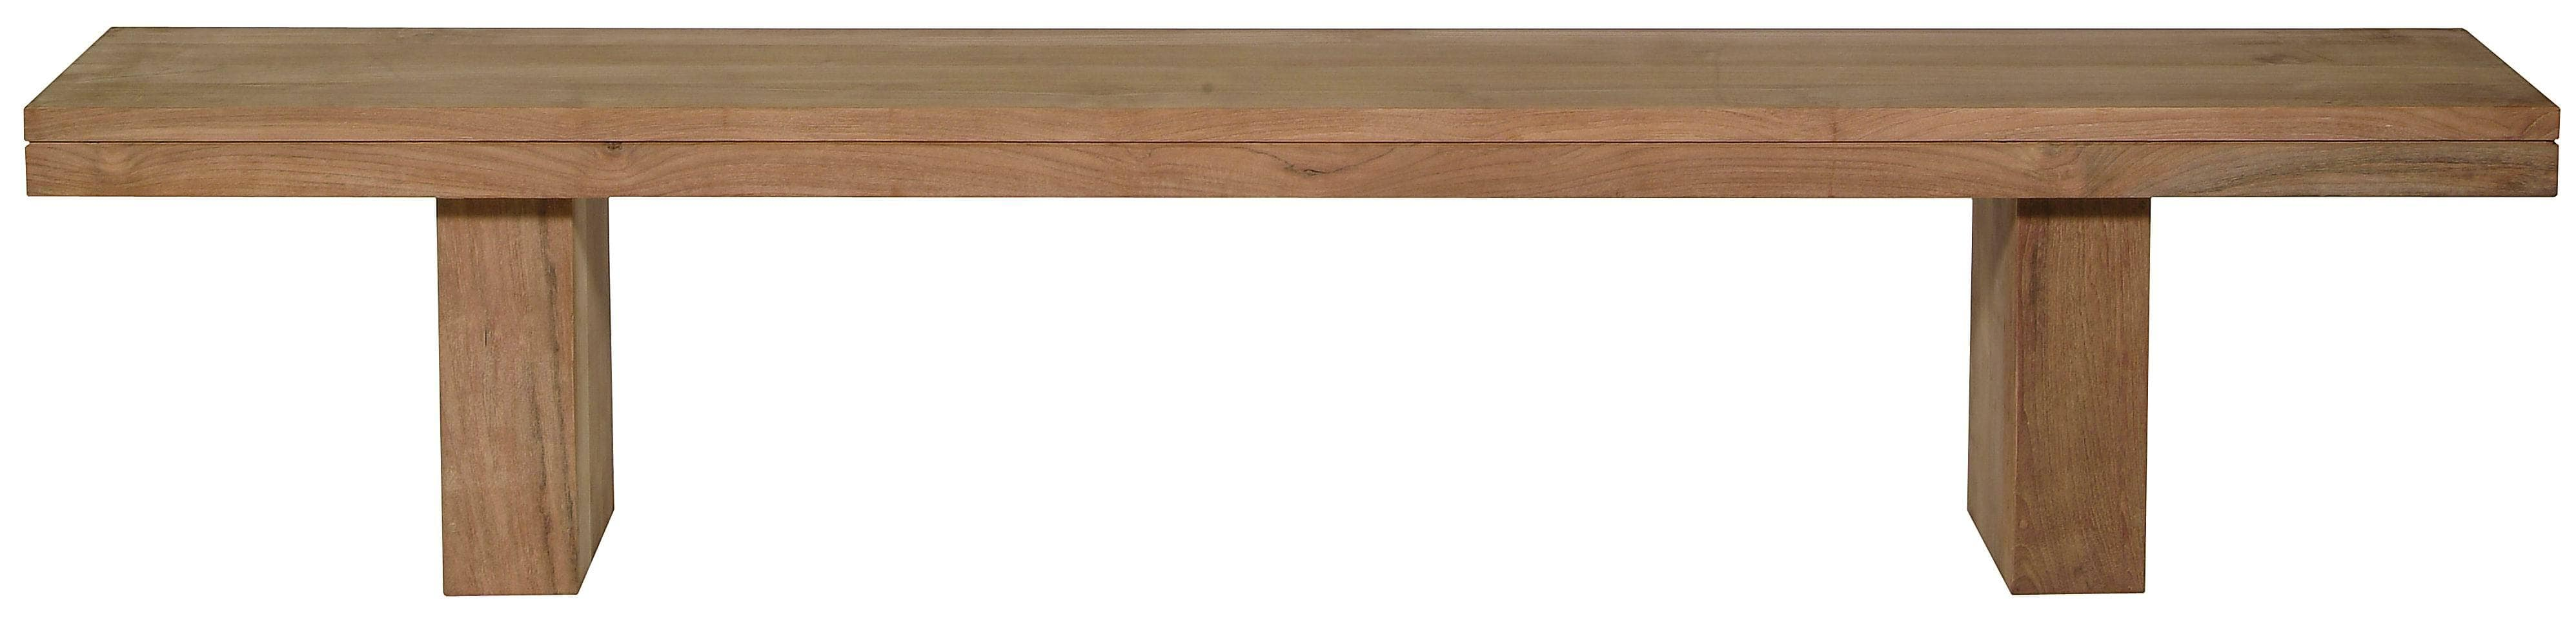 Moe's Home Collection - Double Teak Bench Large 151748151